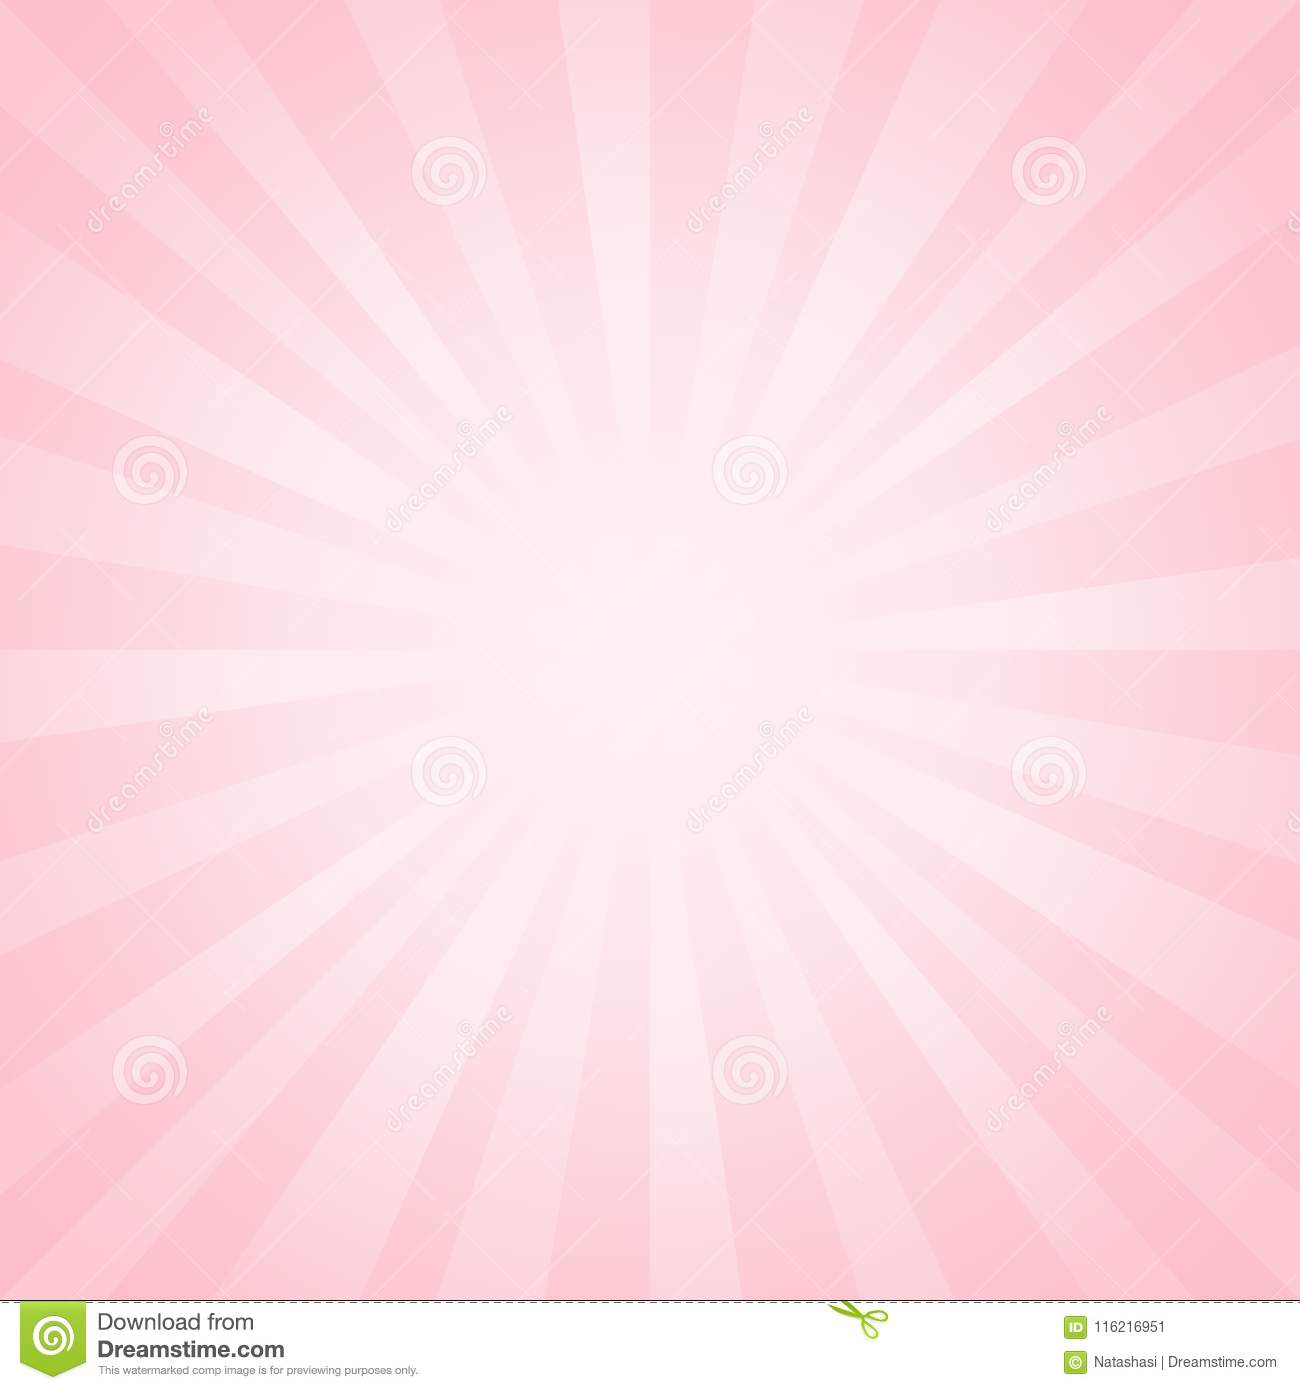 Abstract light soft Pink rays background. Vector